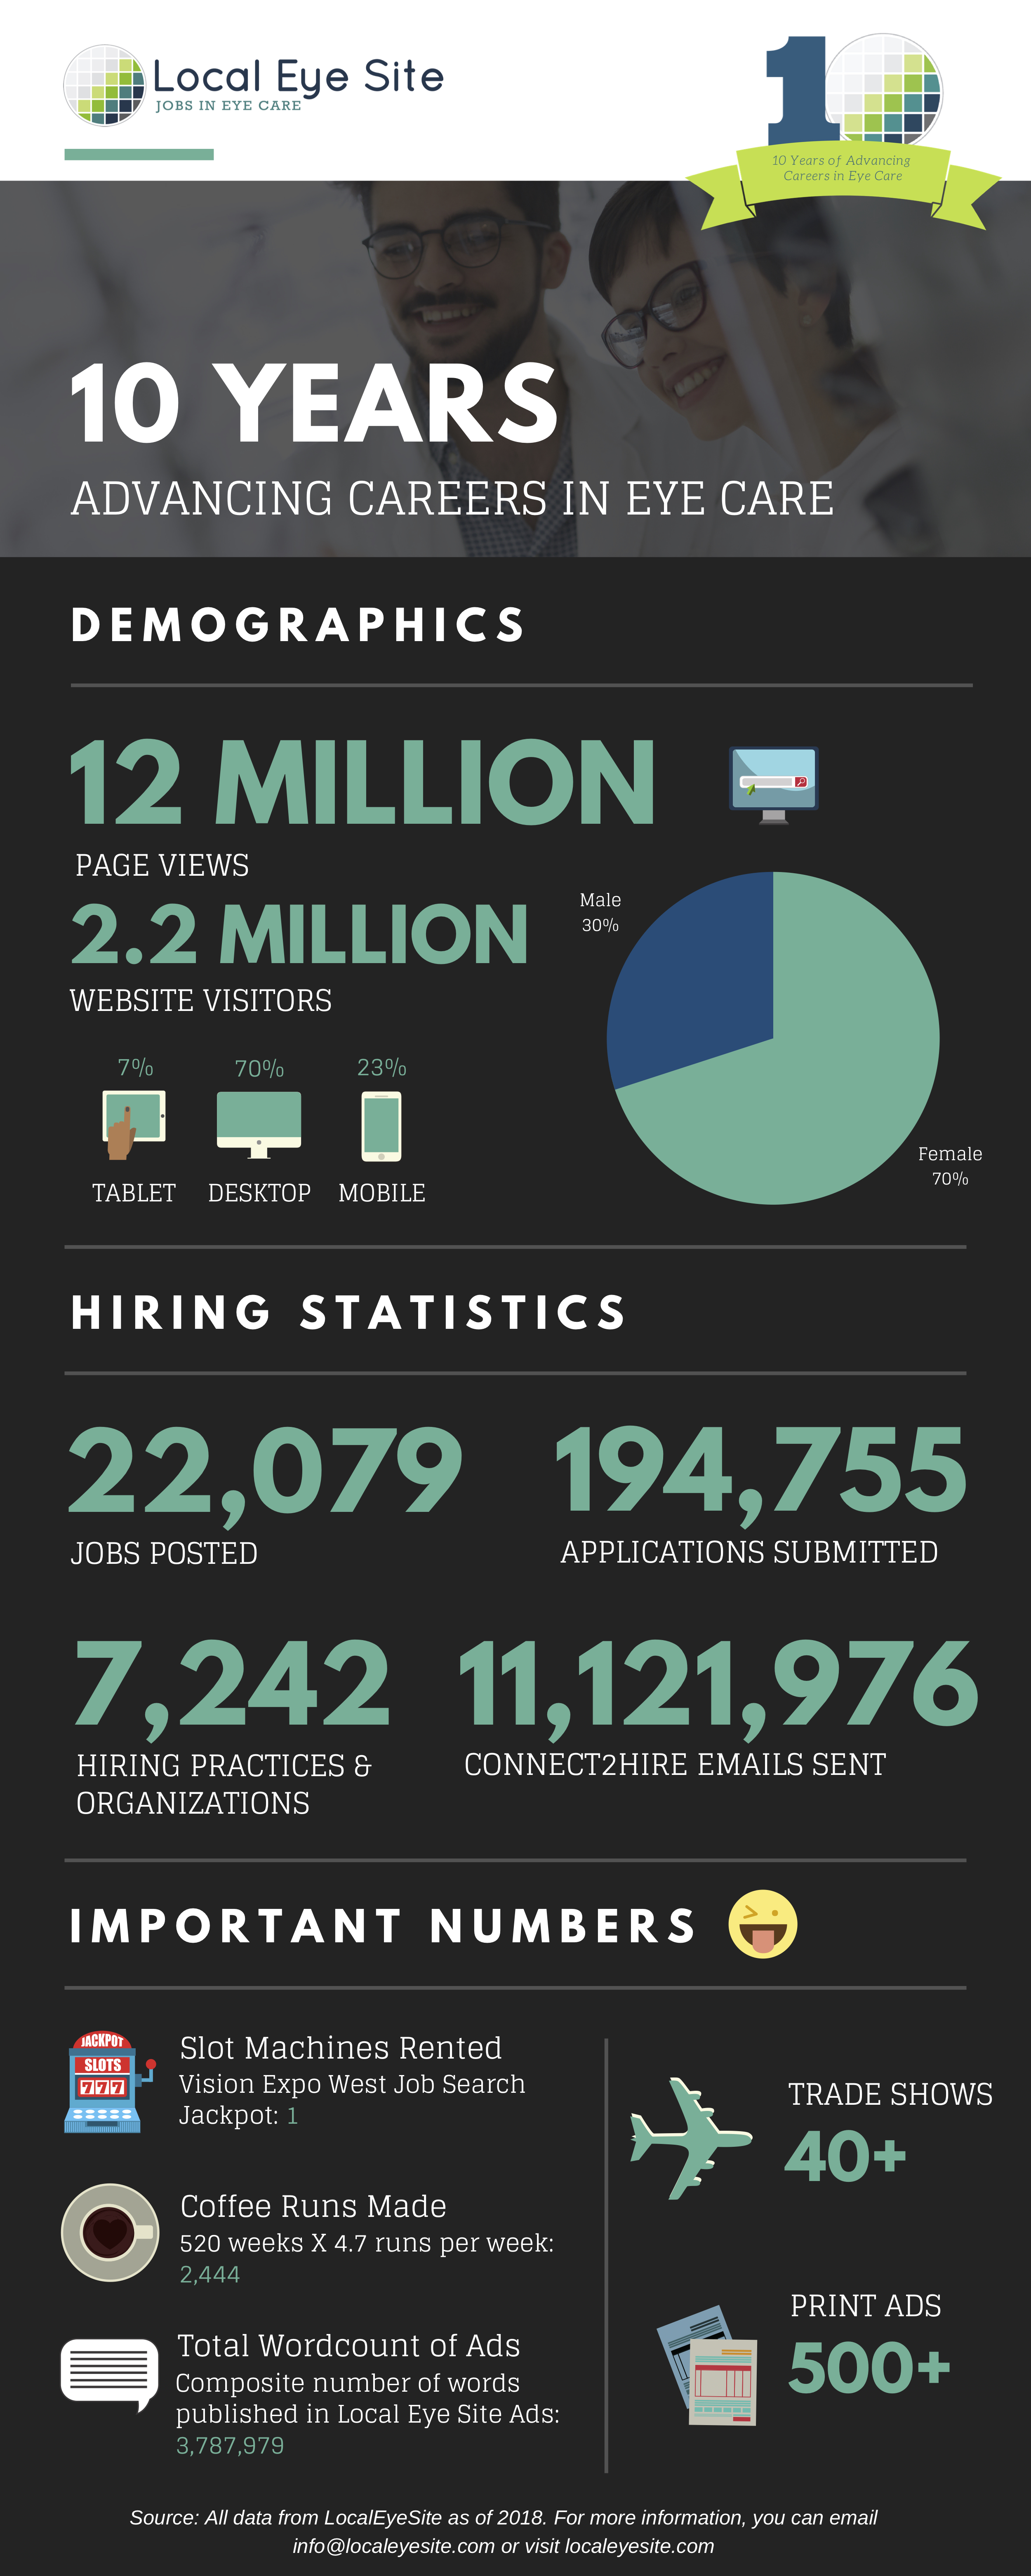 Click here to view our Anniversary Infographic!